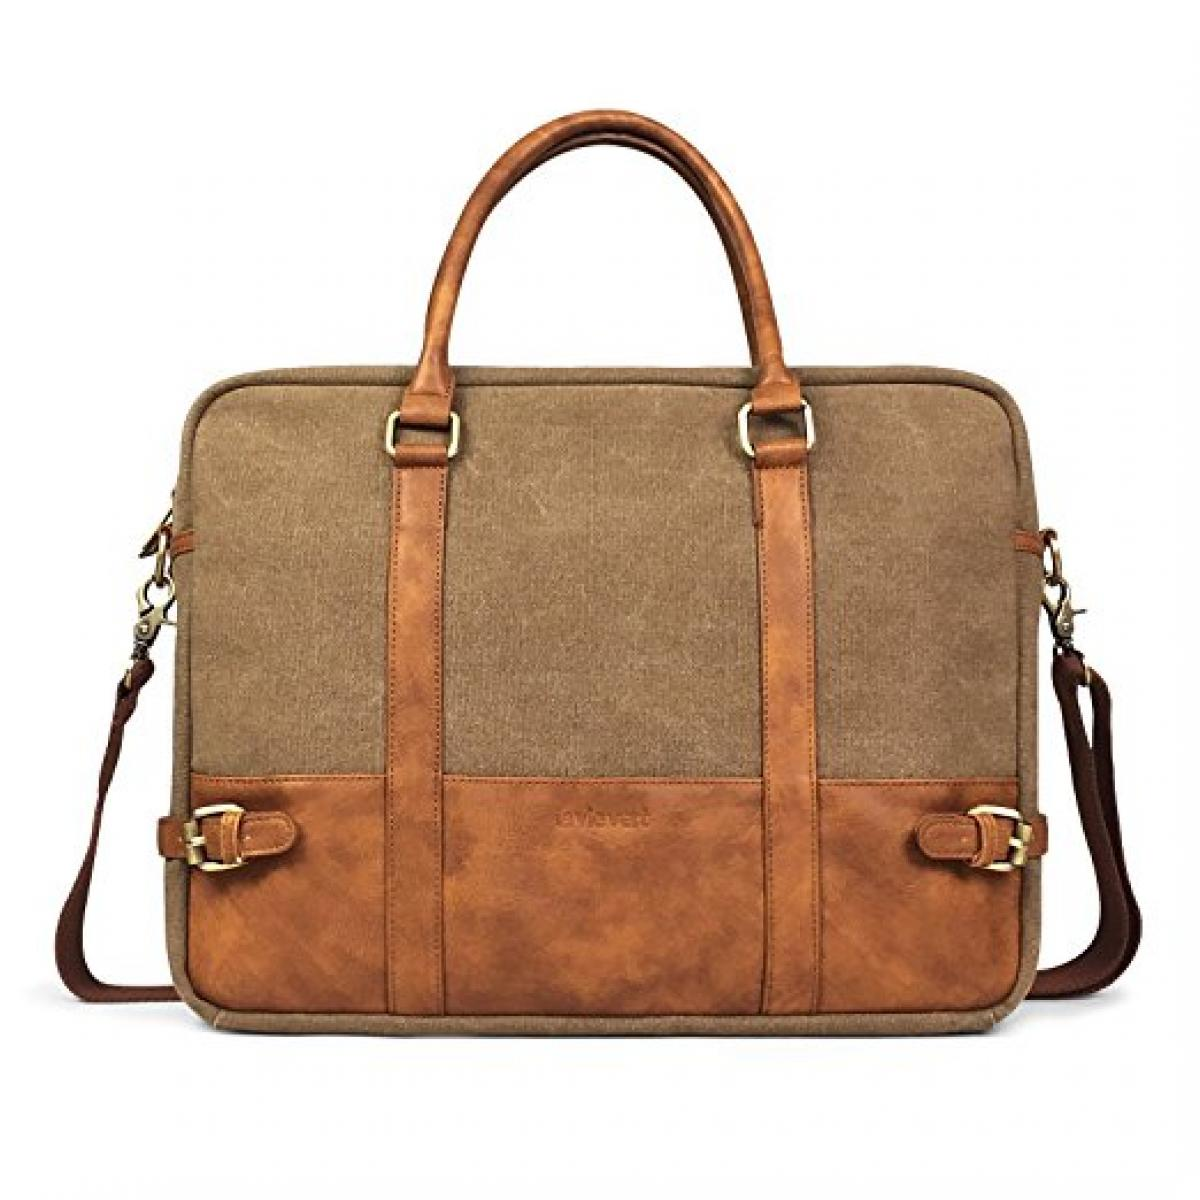 Cotton Canvas Leather Laptop Bag